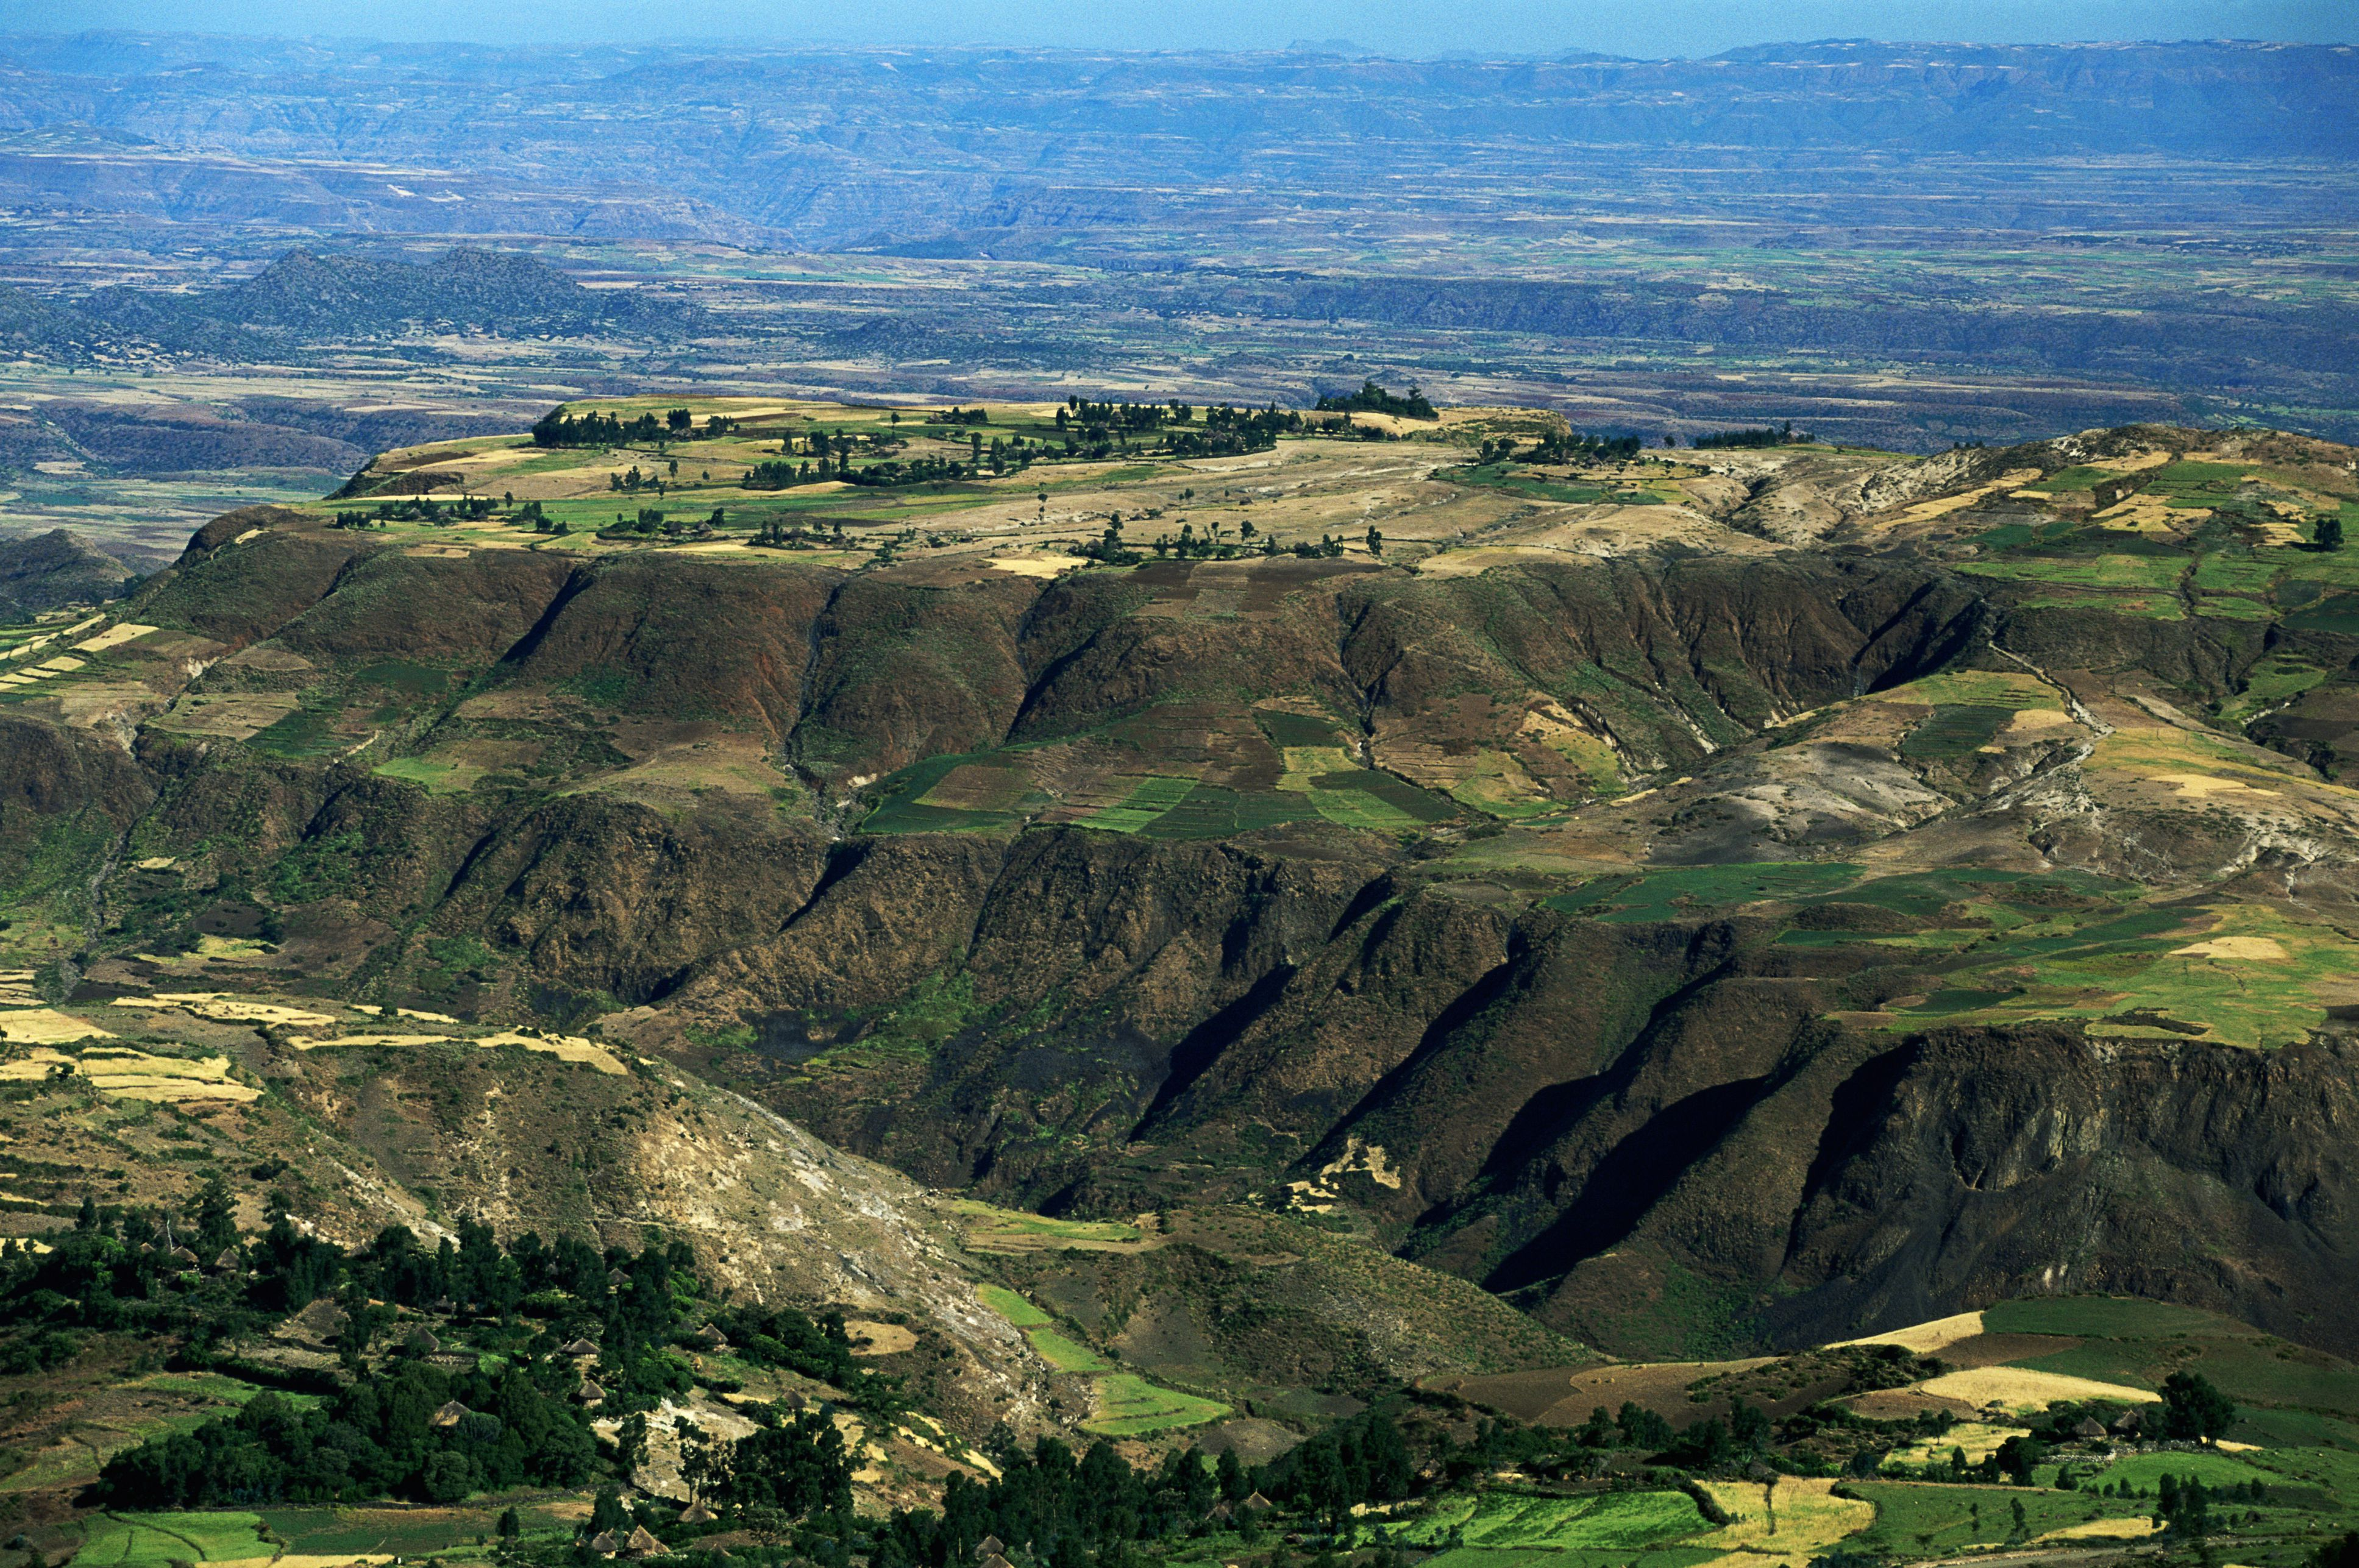 Great Rift Valley - Crack in the Planet's Crust